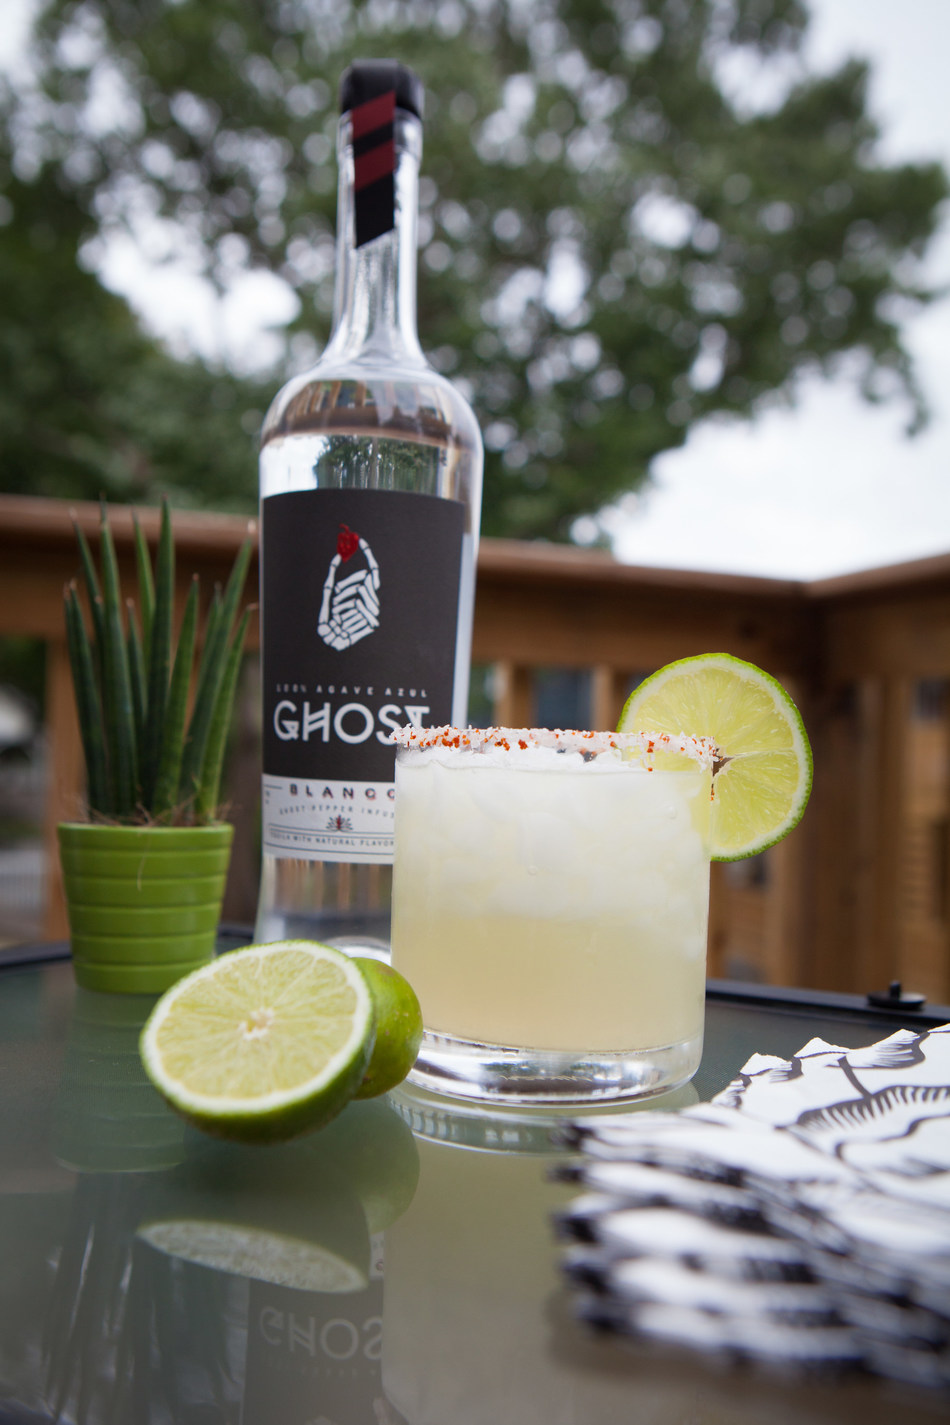 The Ghost Margarita, made with ultra-premium 100% agave Ghost Tequila, is the perfect spicy cocktail for Cinco de Mayo, or any occasion.